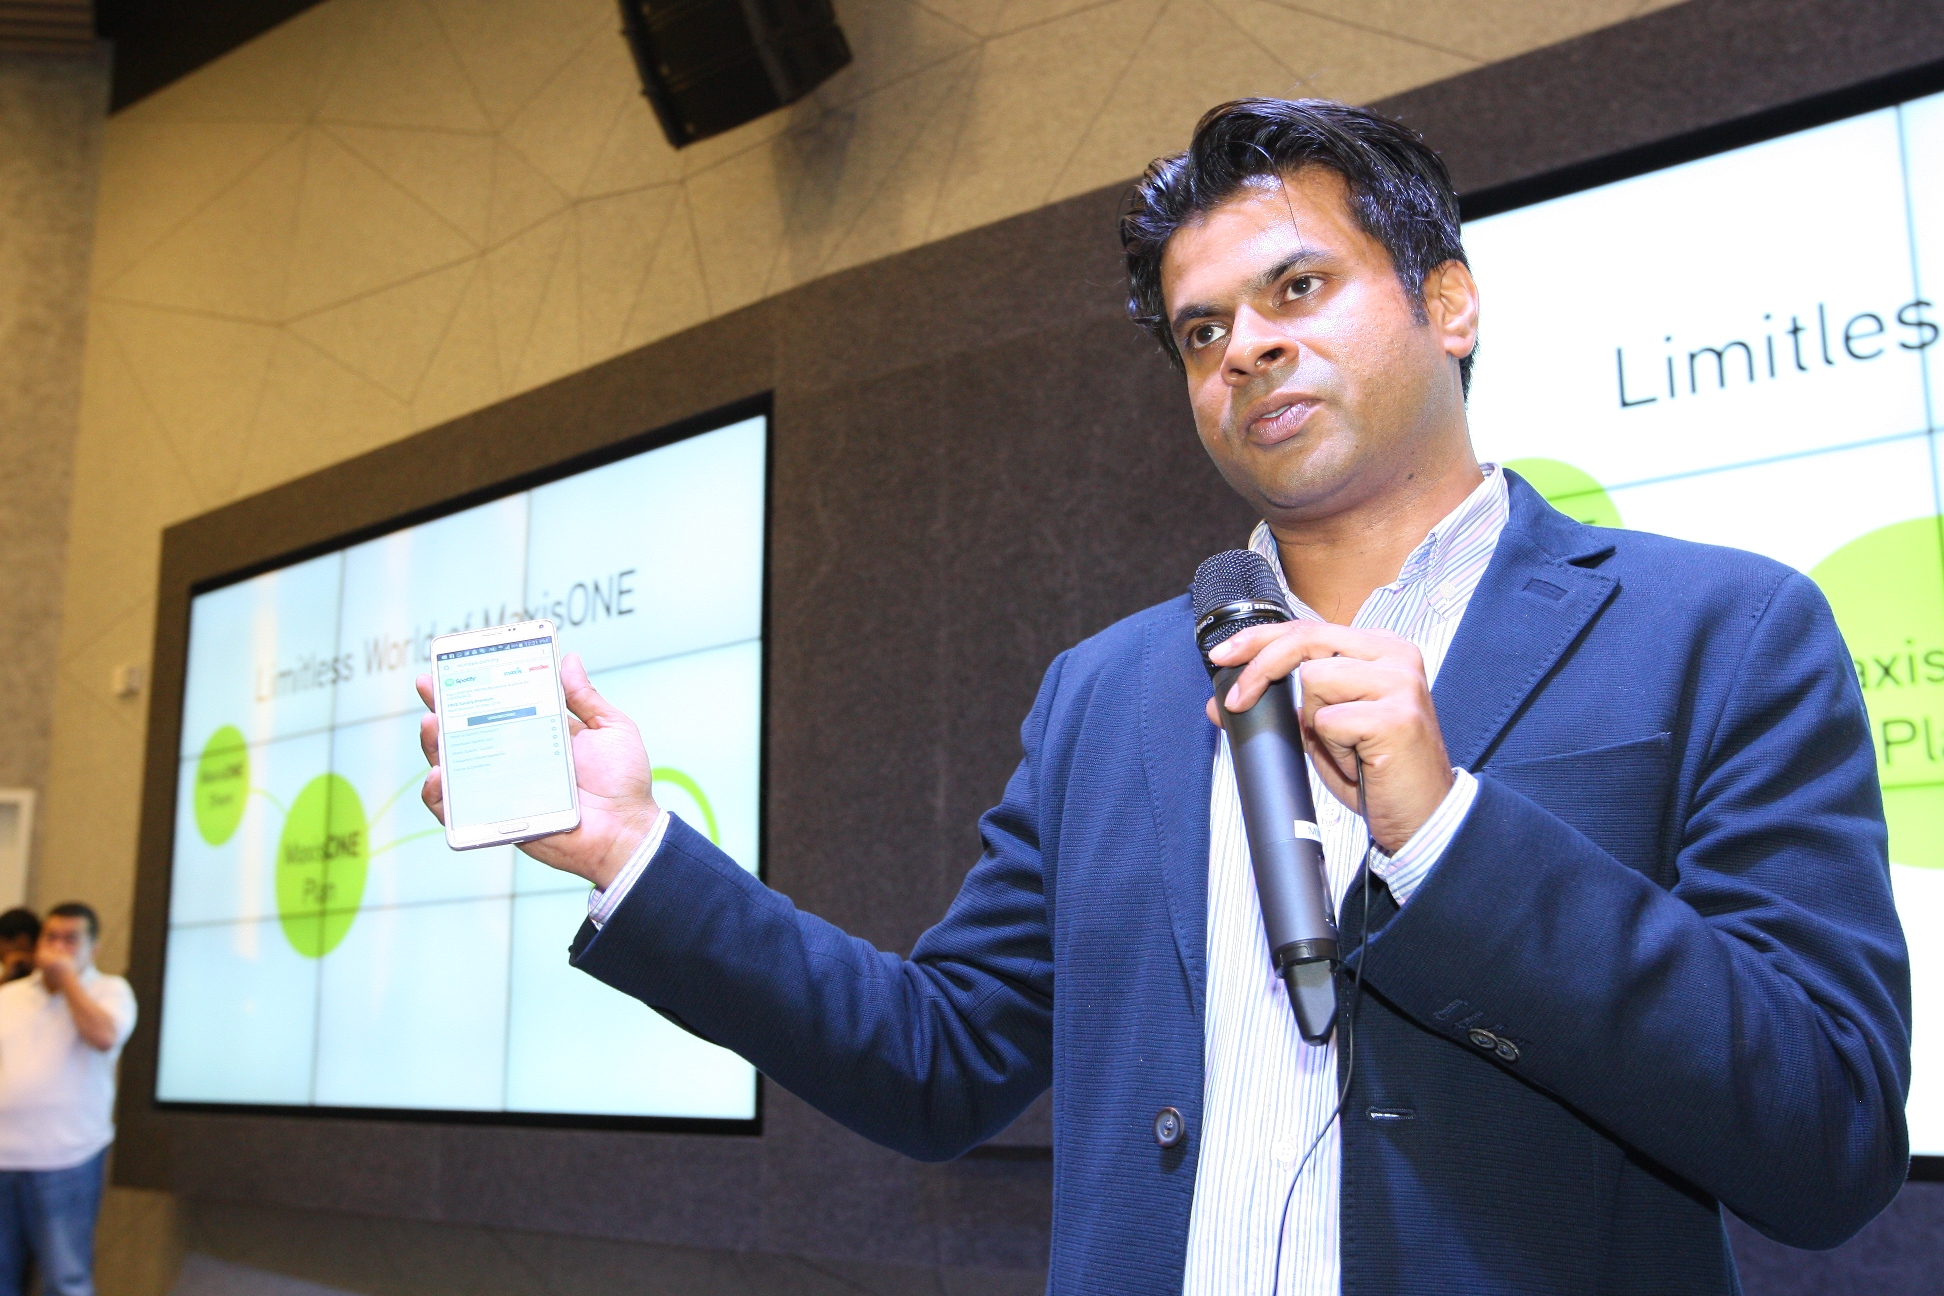 Dushyan Vaithiyanathan, Maxis' Head of Consumer Business, explaining the many benefits of the Limitless World of MaxisONE during the event.